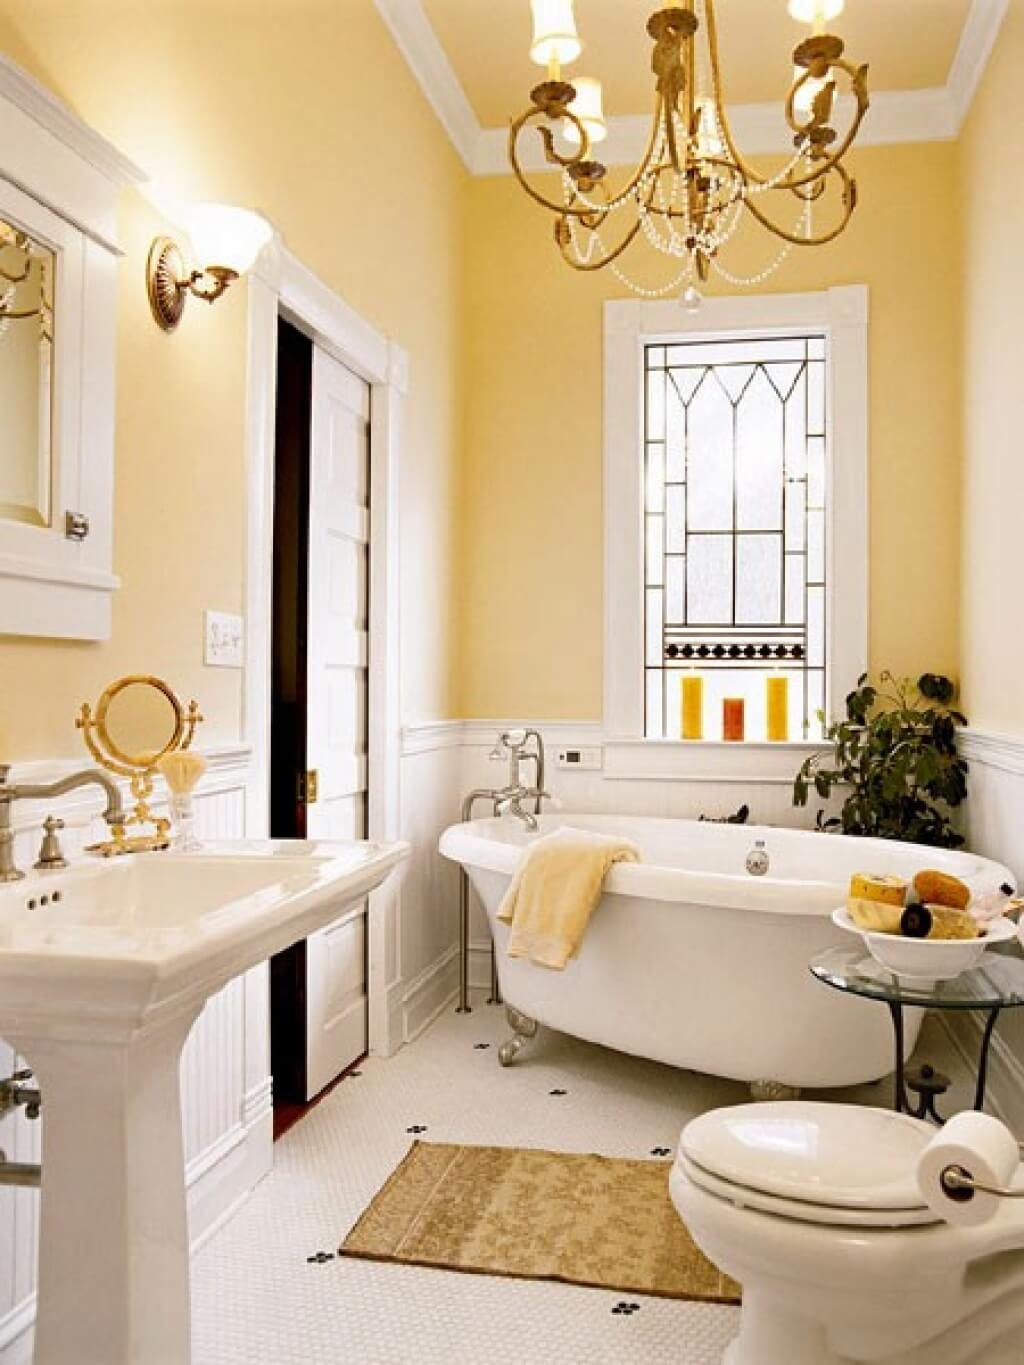 best small bathroom designs 32 best small bathroom design ideas and decorations for 2020 8383